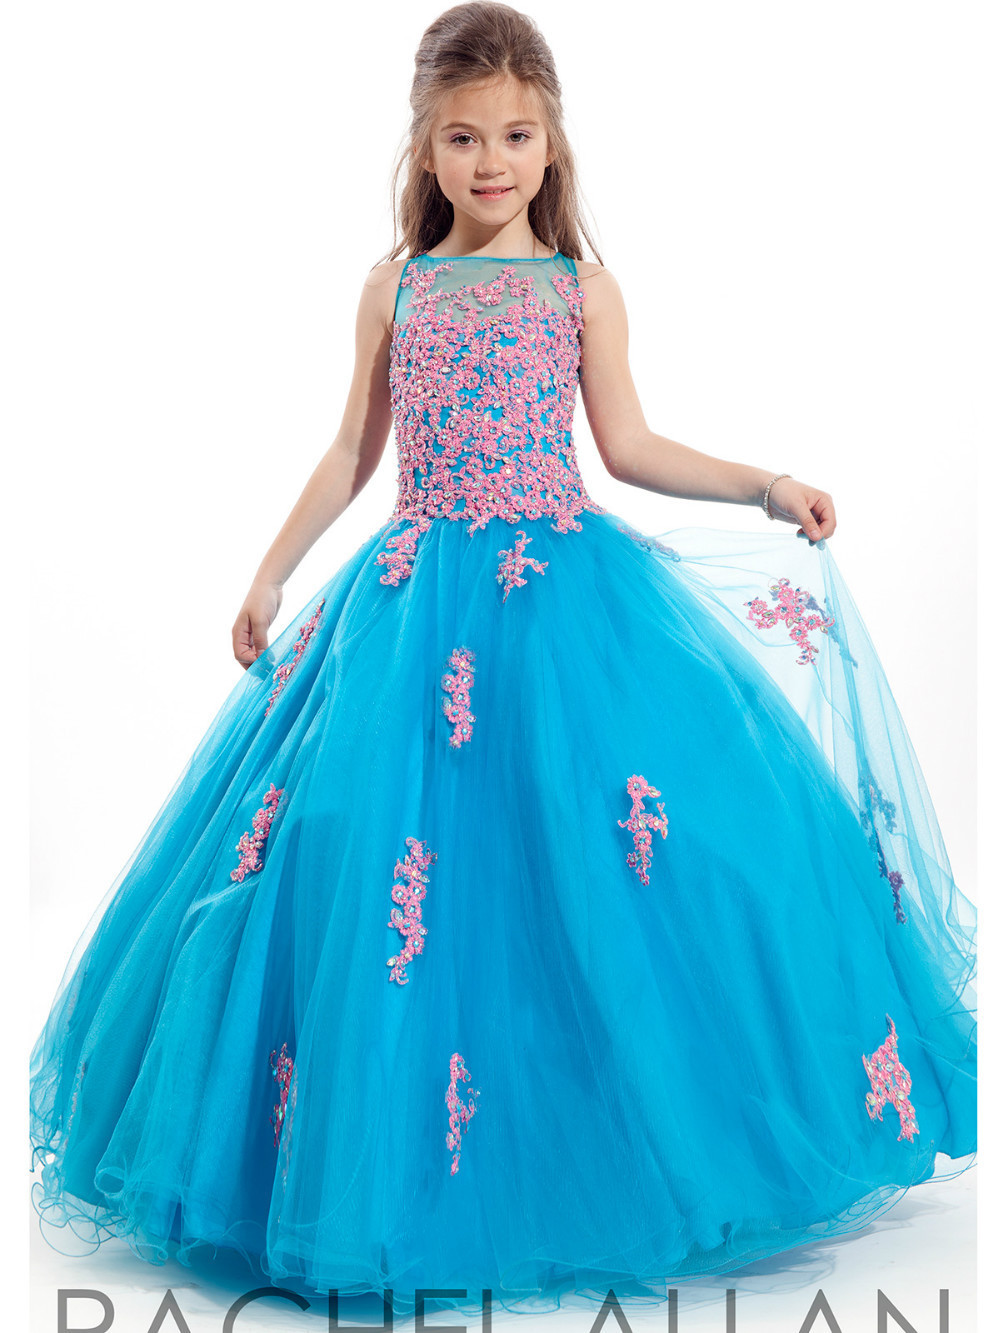 Kids, Dresses, Flower Girl Dresses at exeezipcoolgetsiu9tq.cf, offering the modern energy, style and personalized service of Lord and Taylor stores, in an enhanced, easy-to-navigate shopping experience.